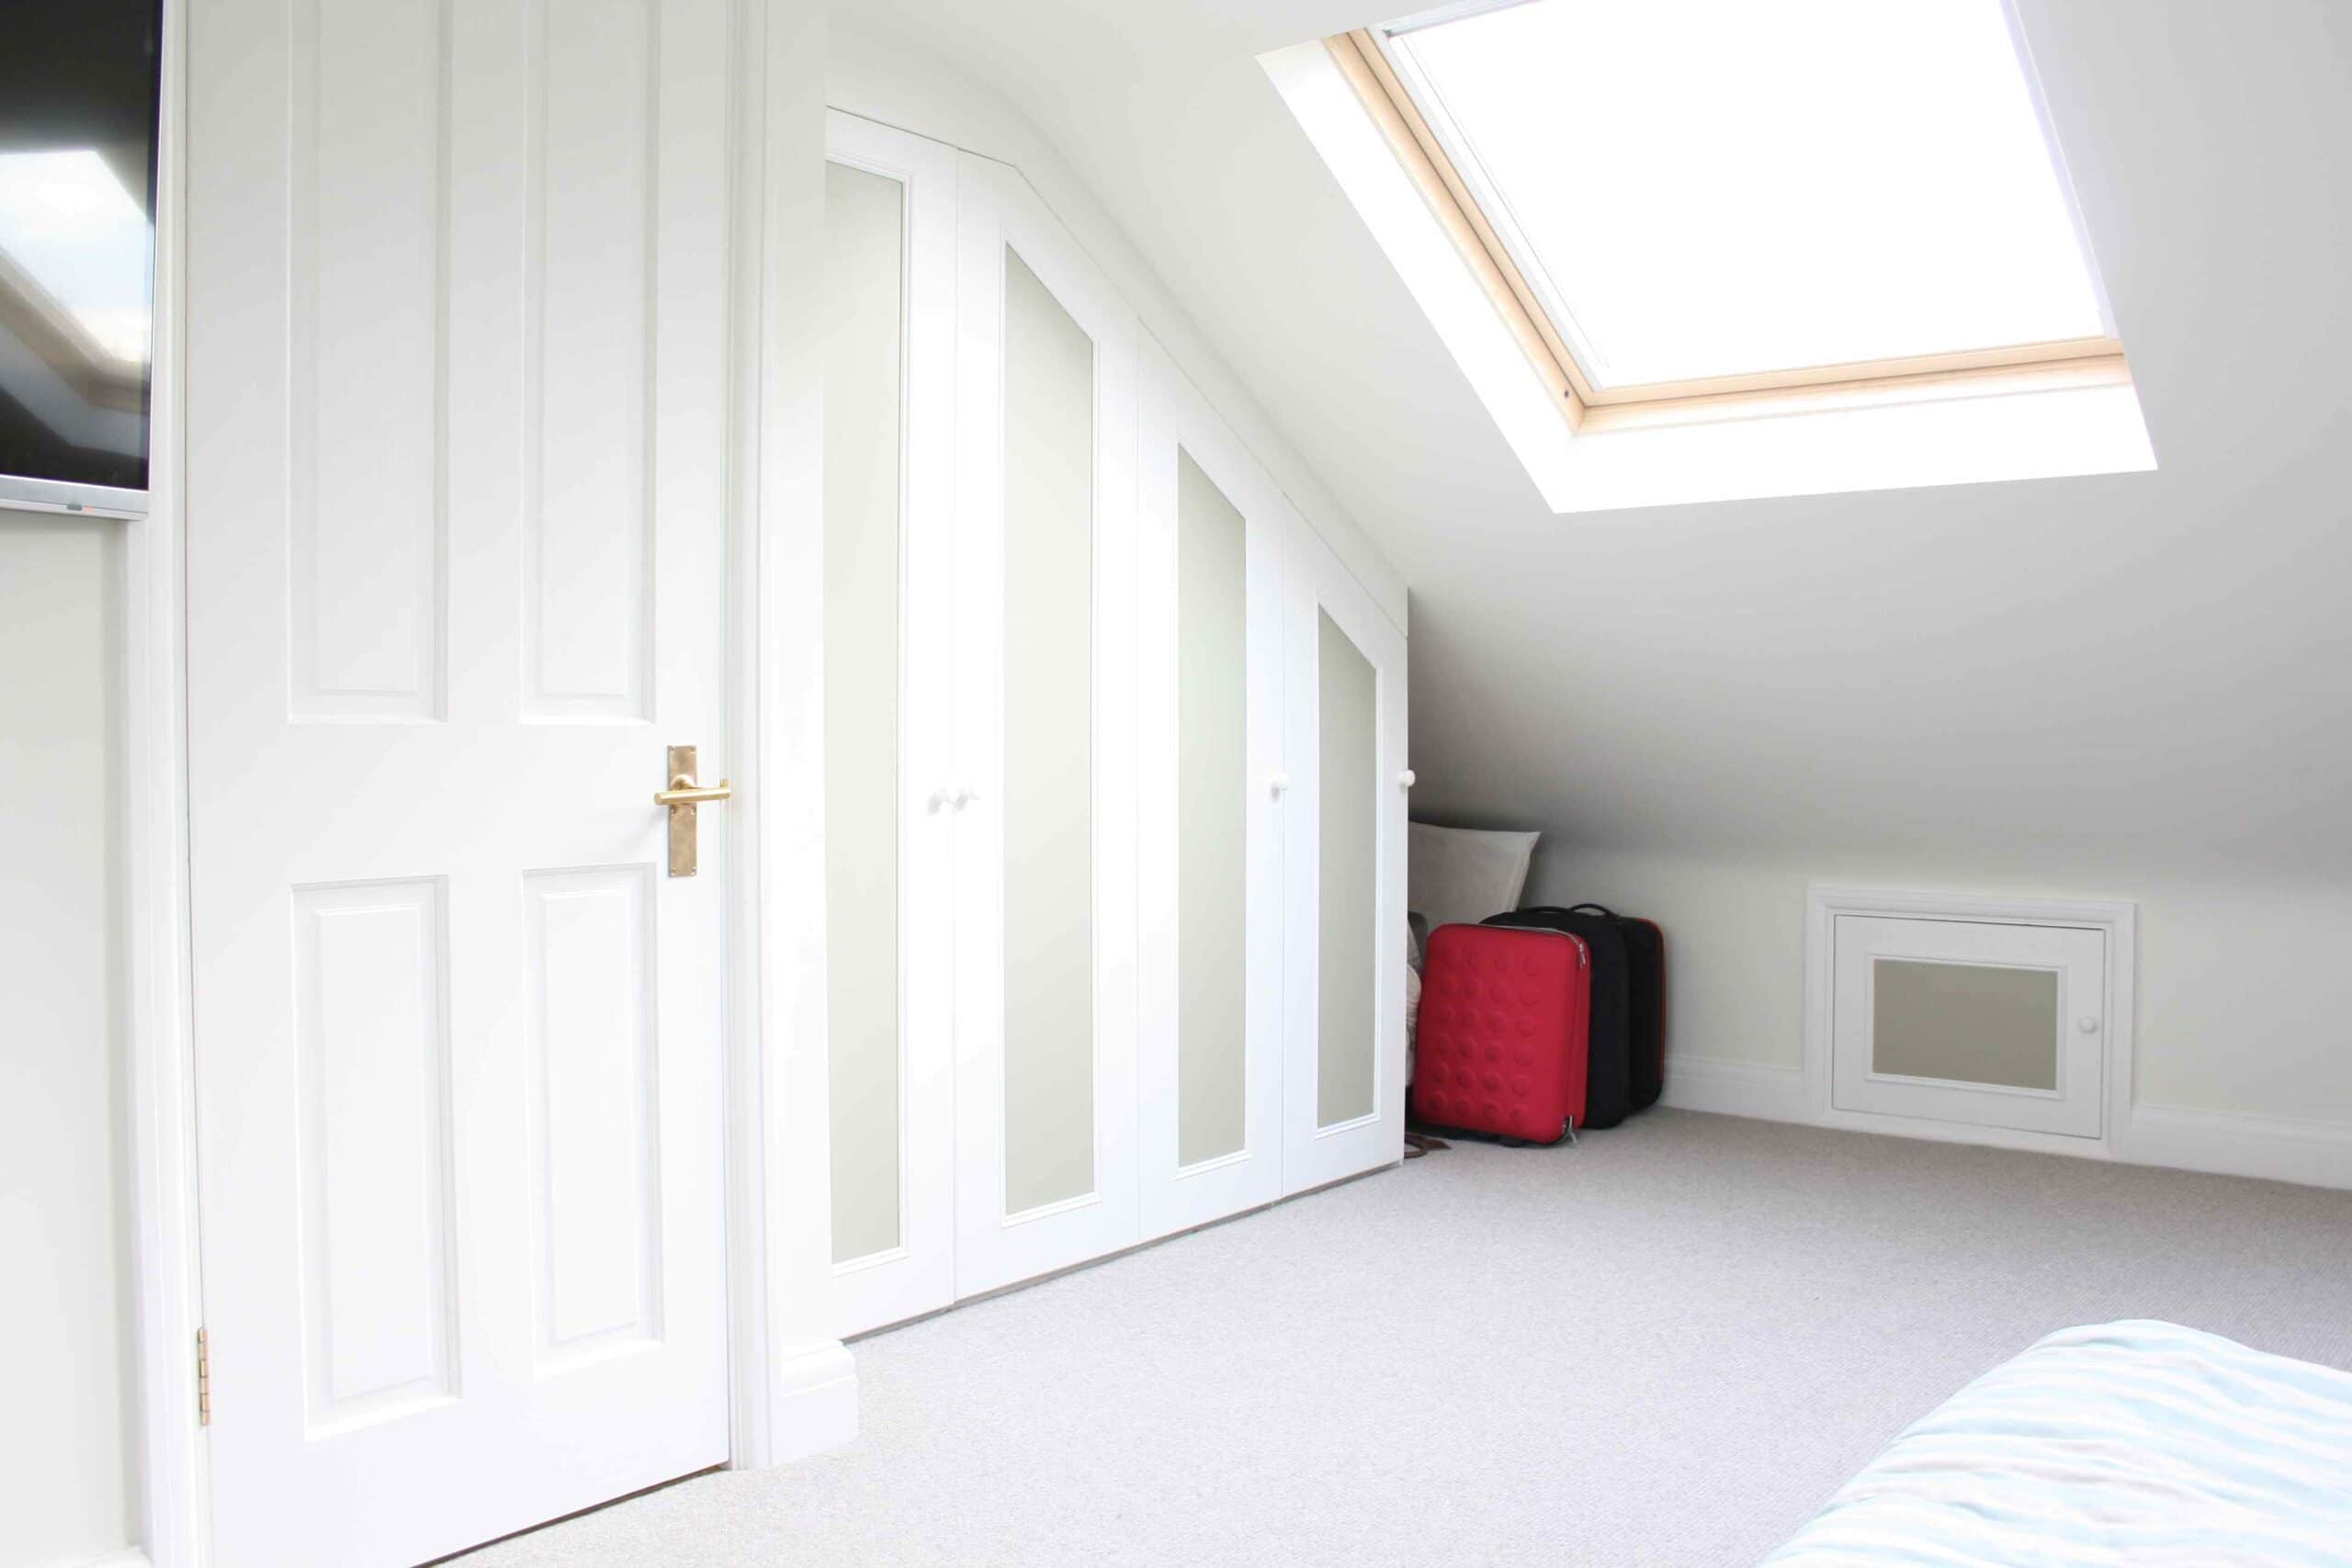 Loft Storage How To Use Dead Space In A Loft Conversion Simply Loft London